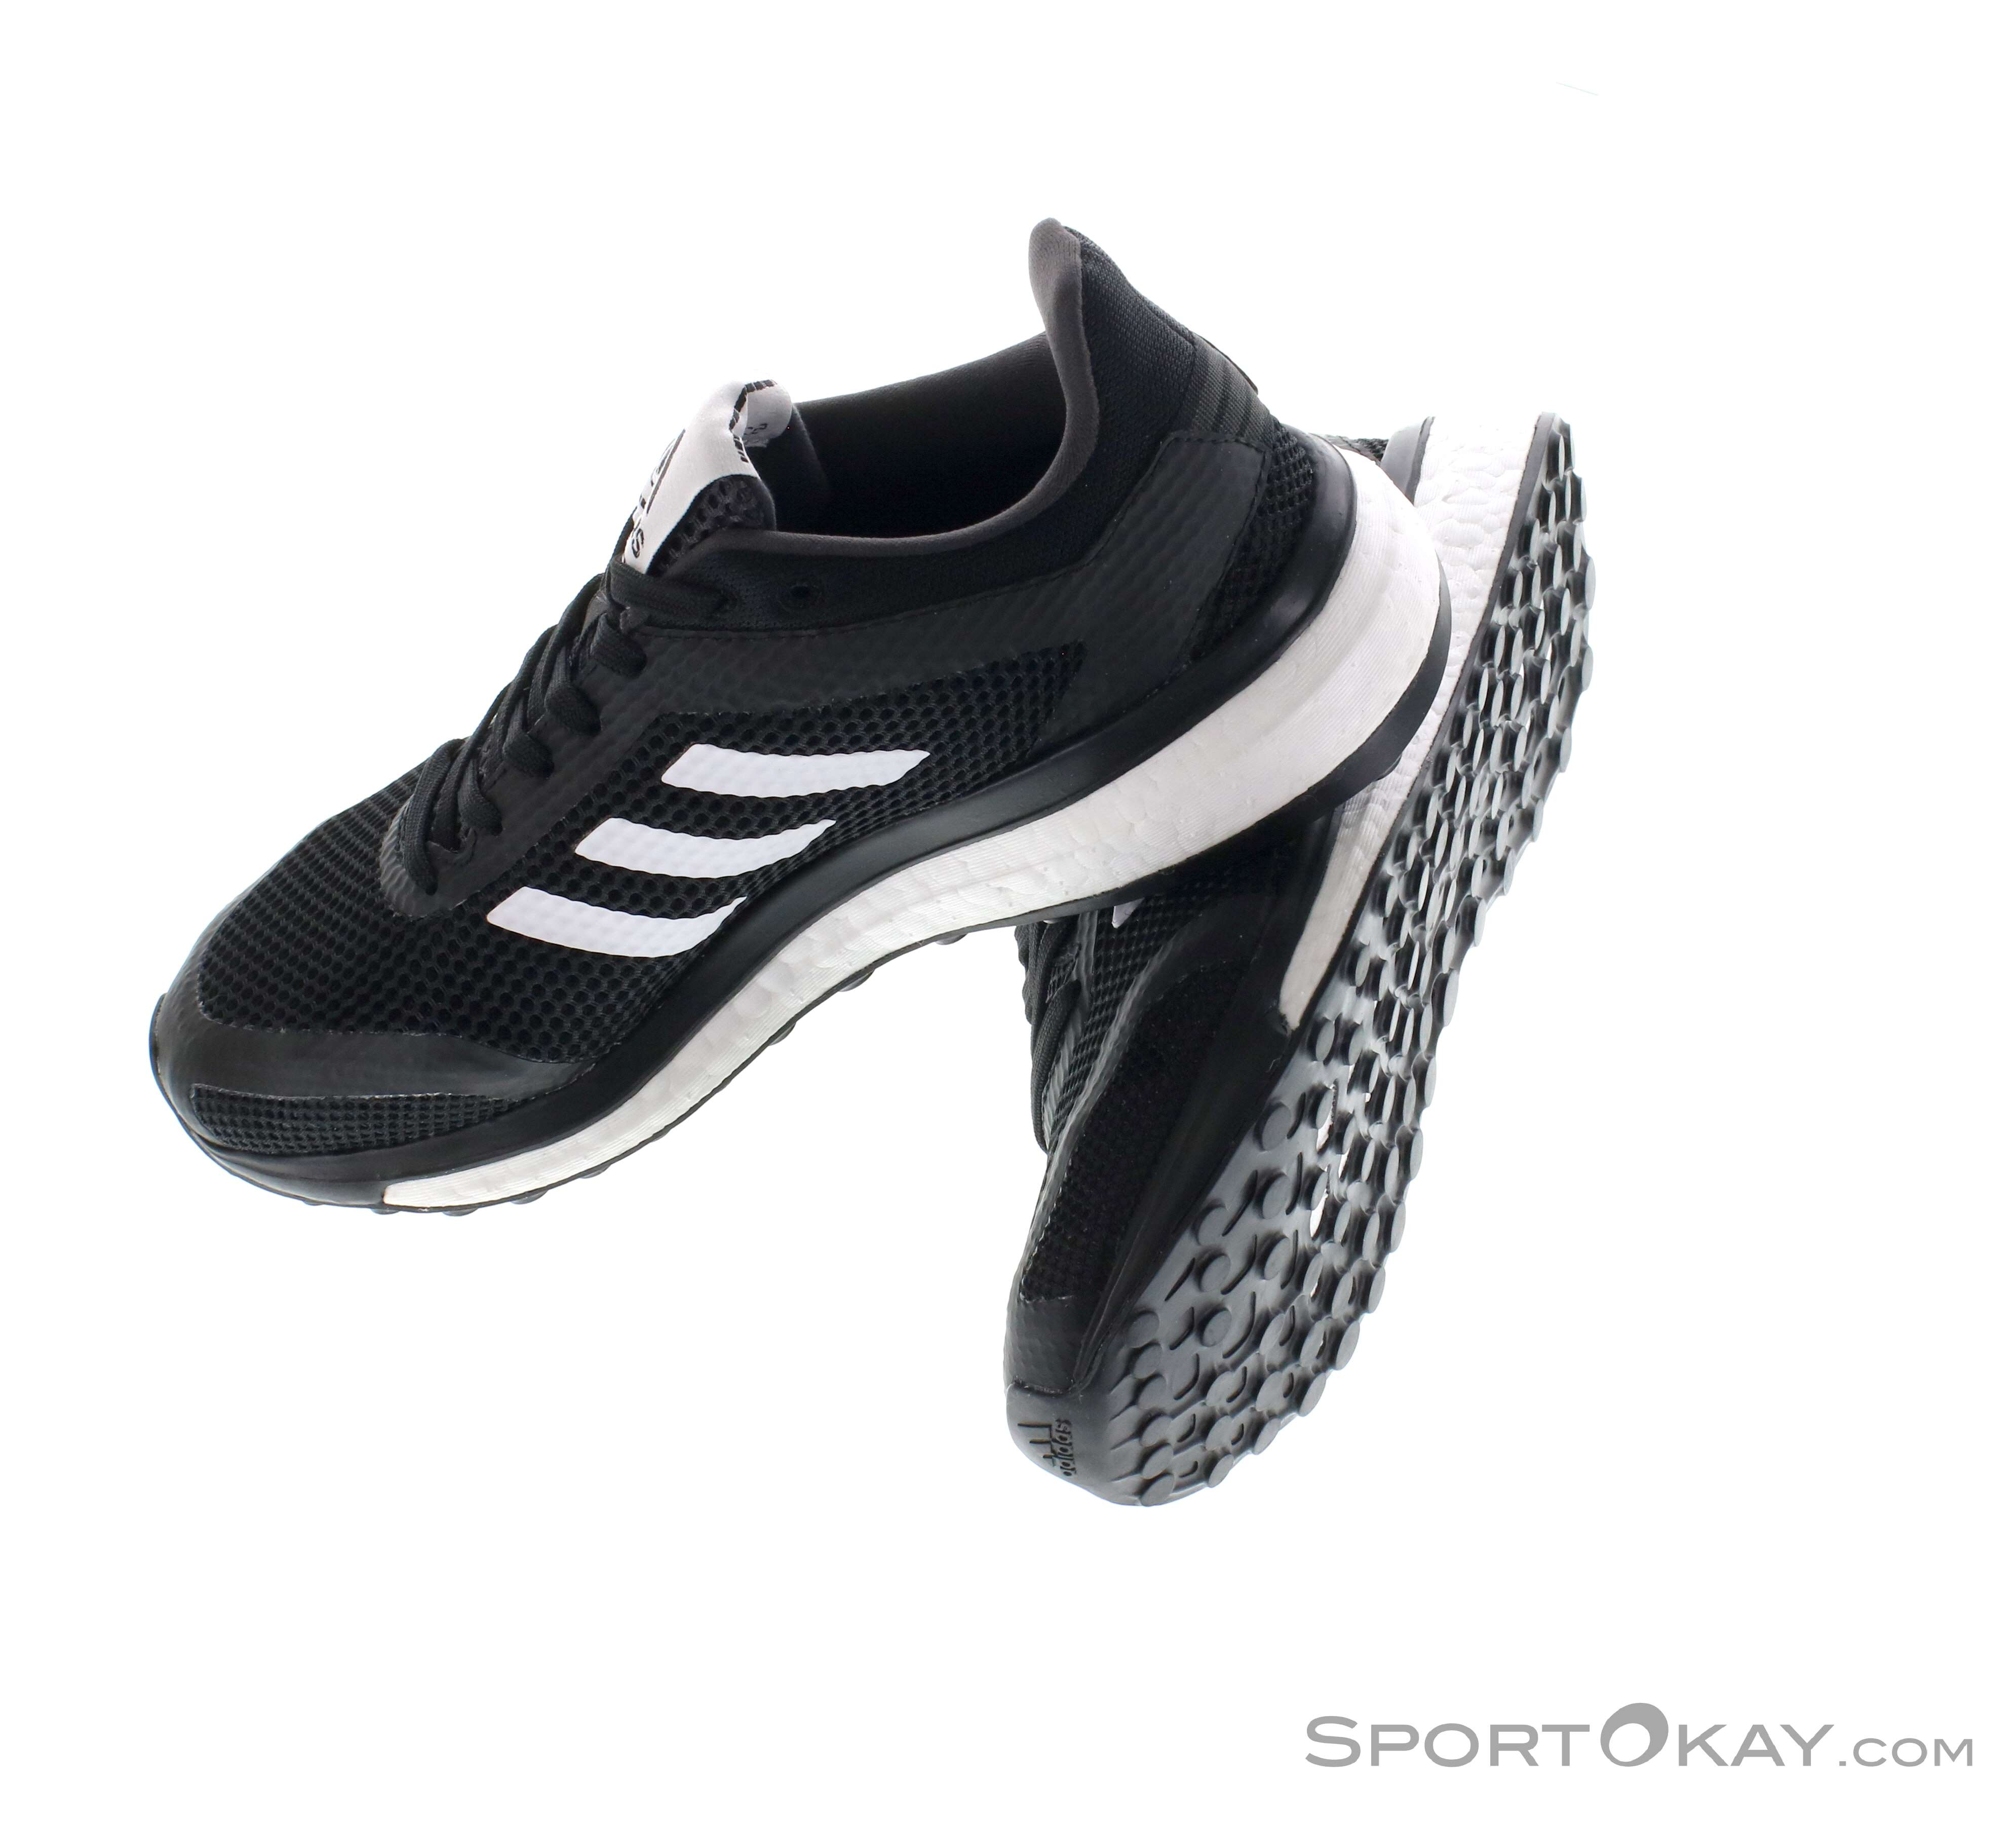 5e86c86fa25 adidas Response+M Womens Running Shoes - All-Round Running Shoes ...